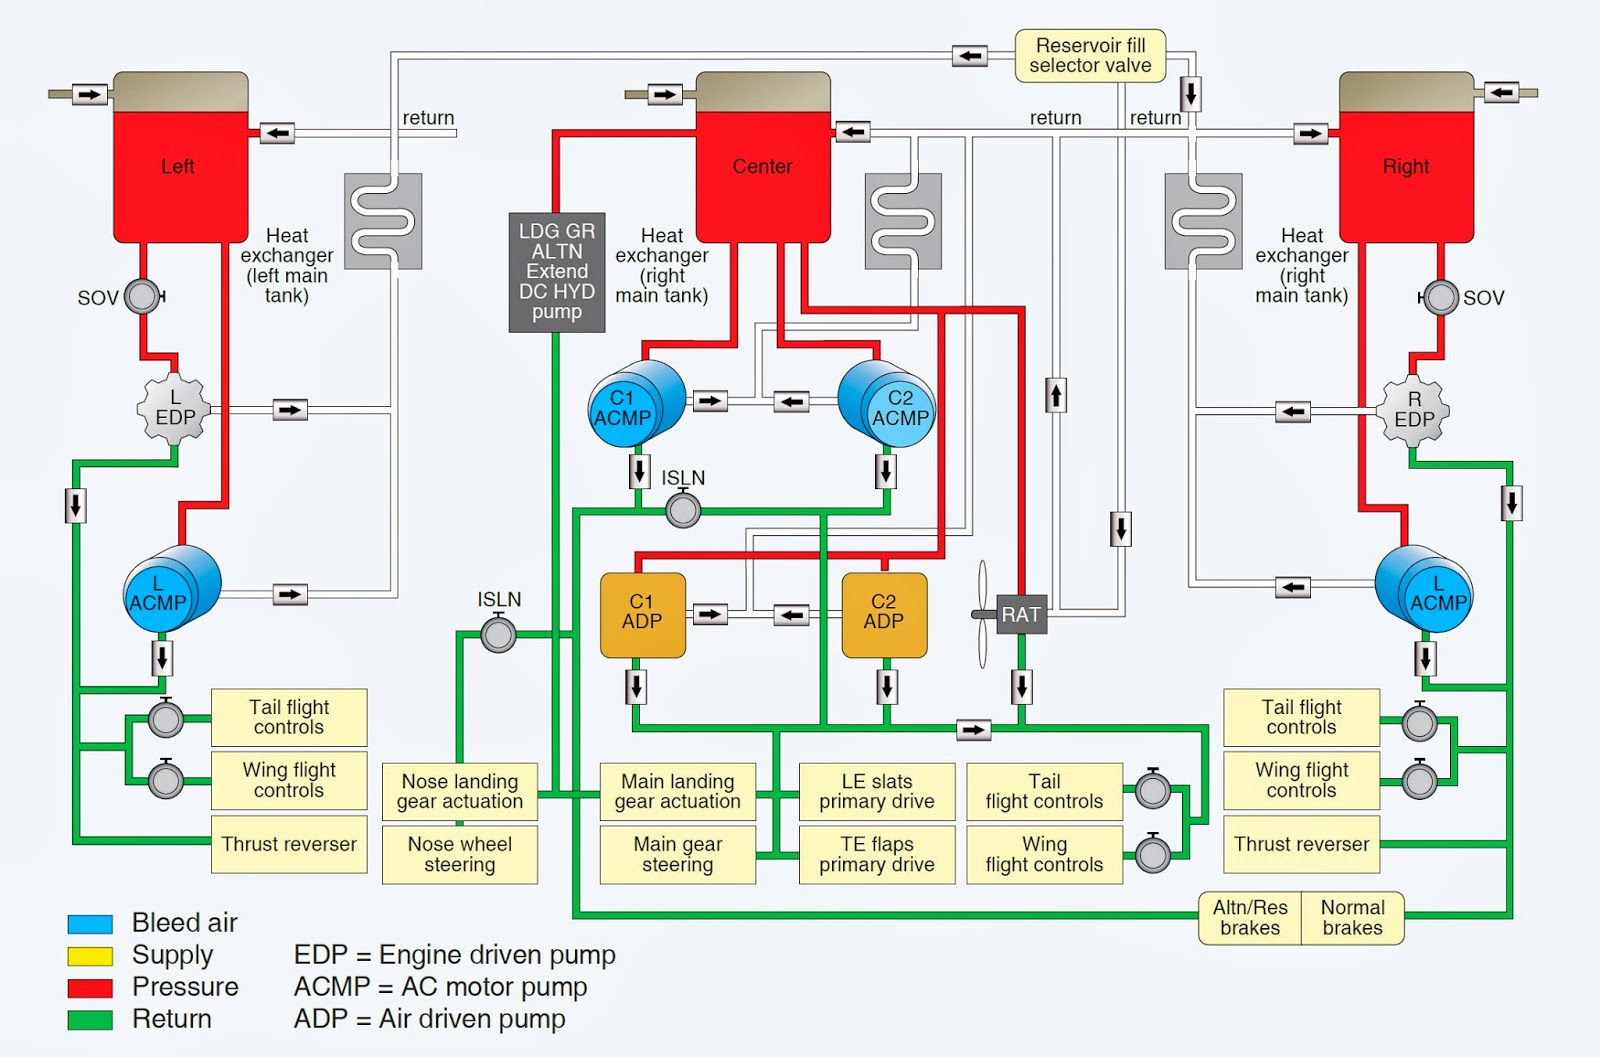 Dayton Hydronic Unit Heater Ivoiregion Bushtec Trailer Wiring Diagram Boeing 777 Manual Image Collections Sample And Guide With